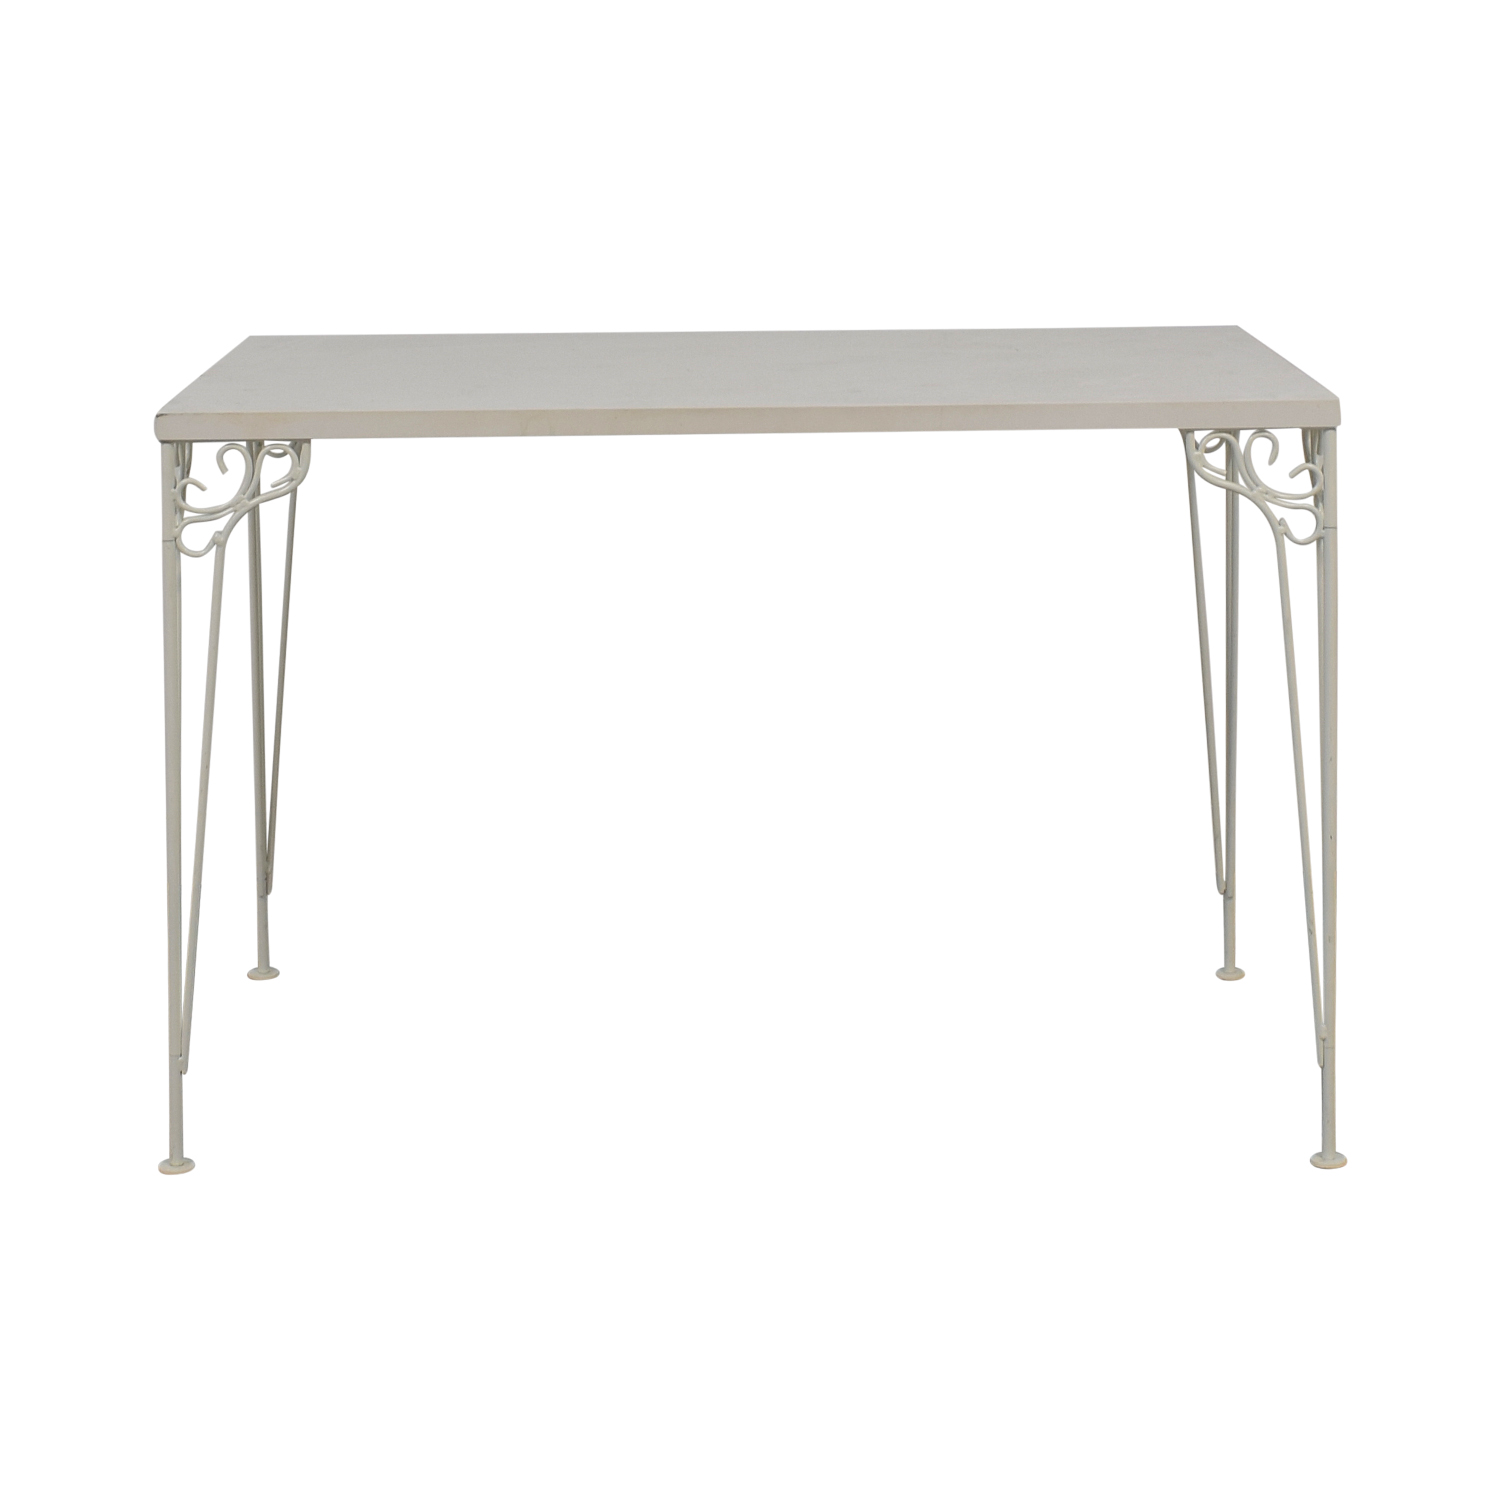 IKEA IKEA White Filigree Legged Desk nj